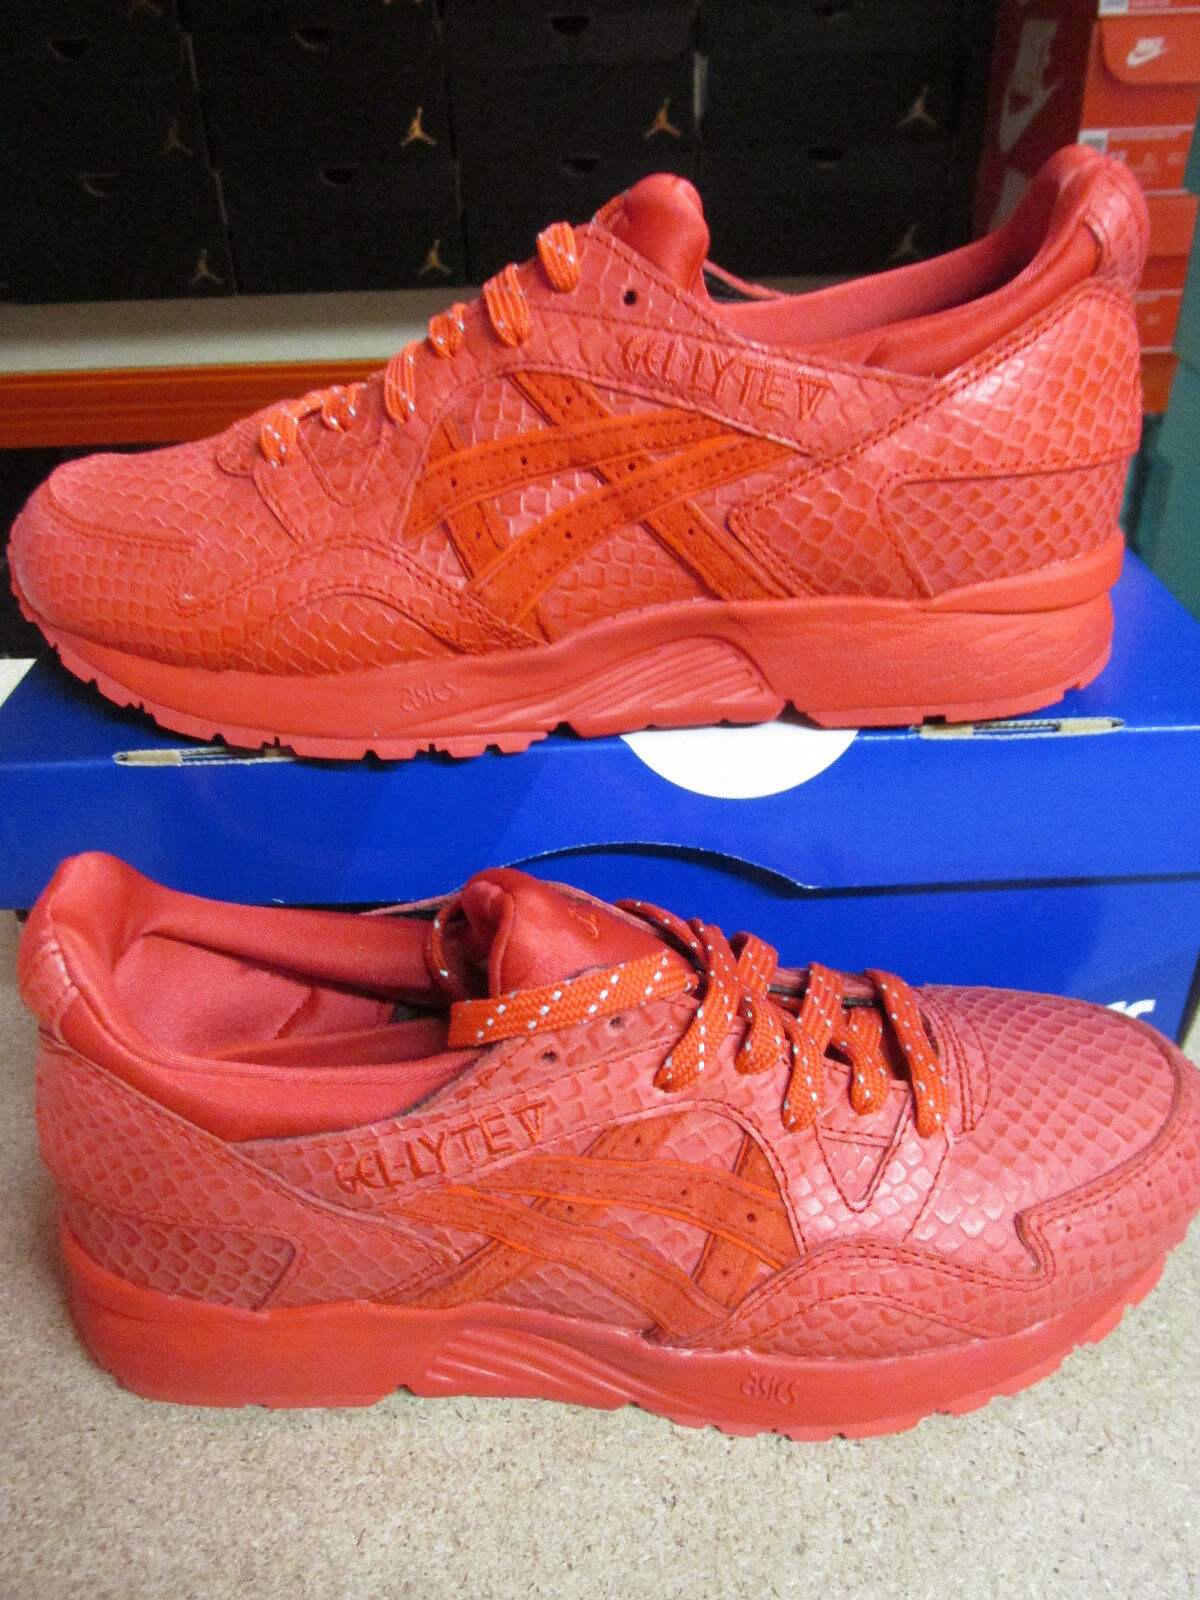 Asics Gel-Lyte V Hombre Running Trainers H51EK 2727 Sneakers Zapatos Zapatos Zapatos fc7c8c